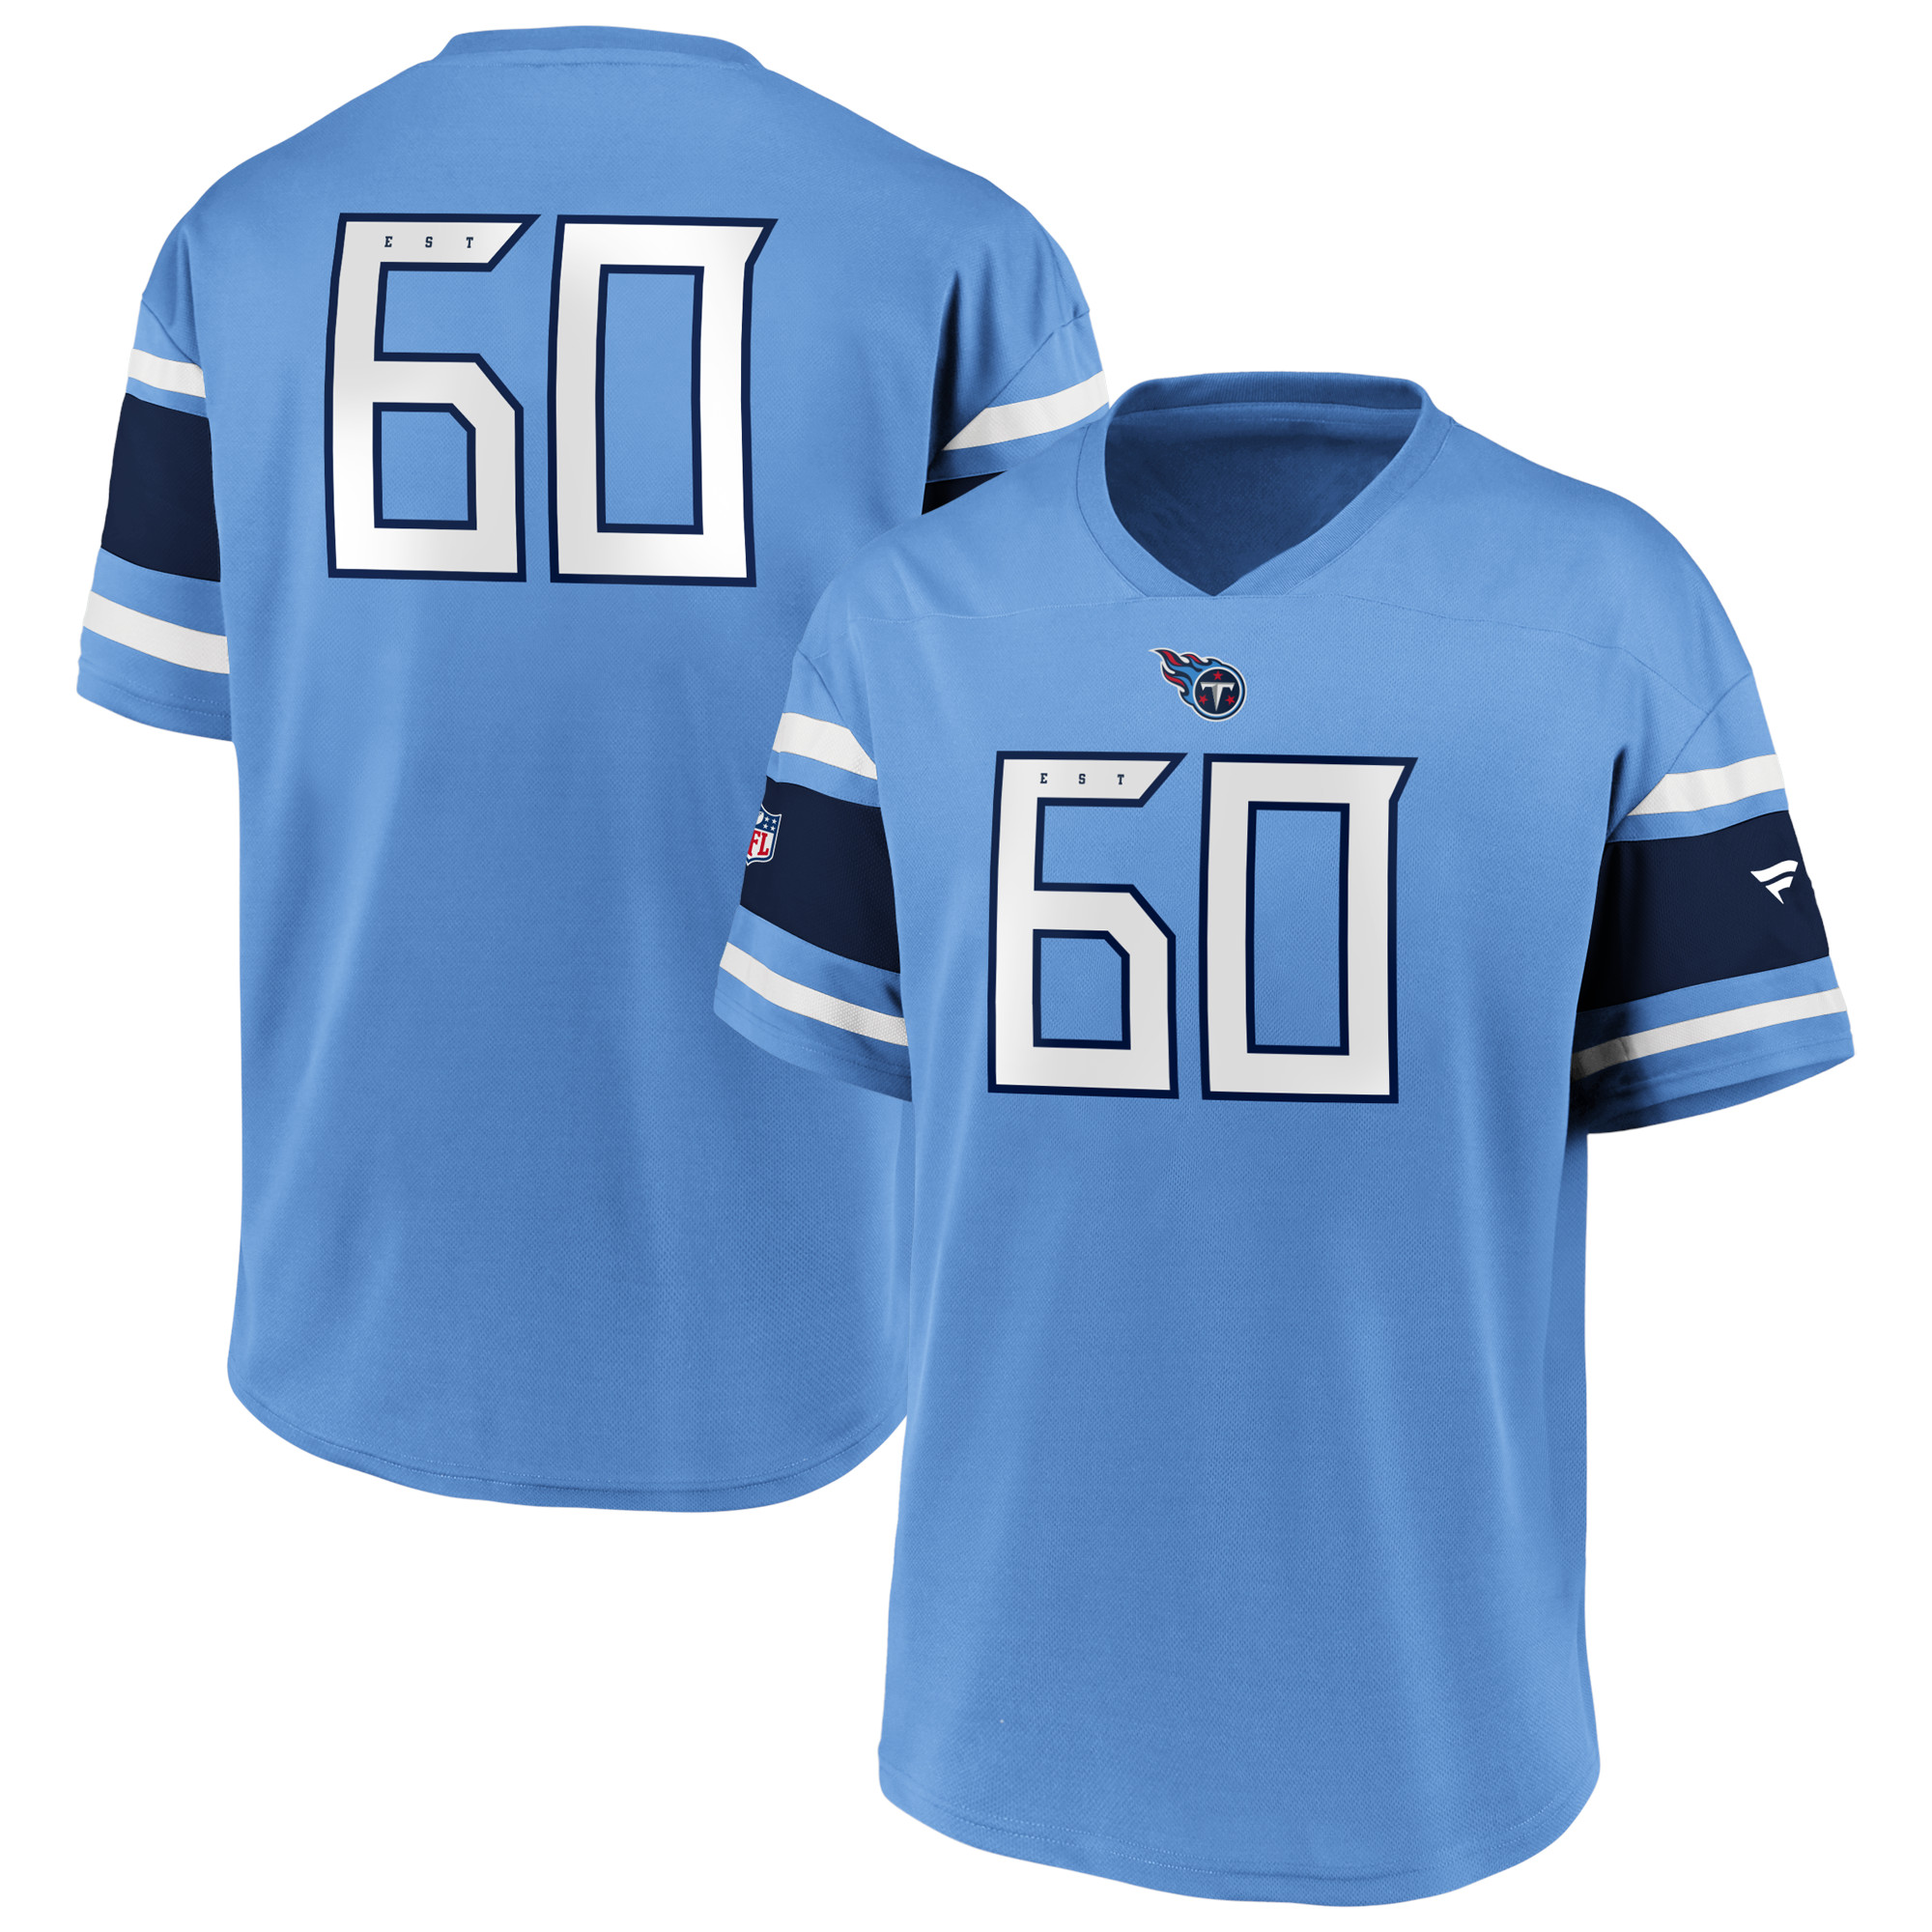 Tennessee Titans Franchise Poly Mesh Jersey - Sky - Adult